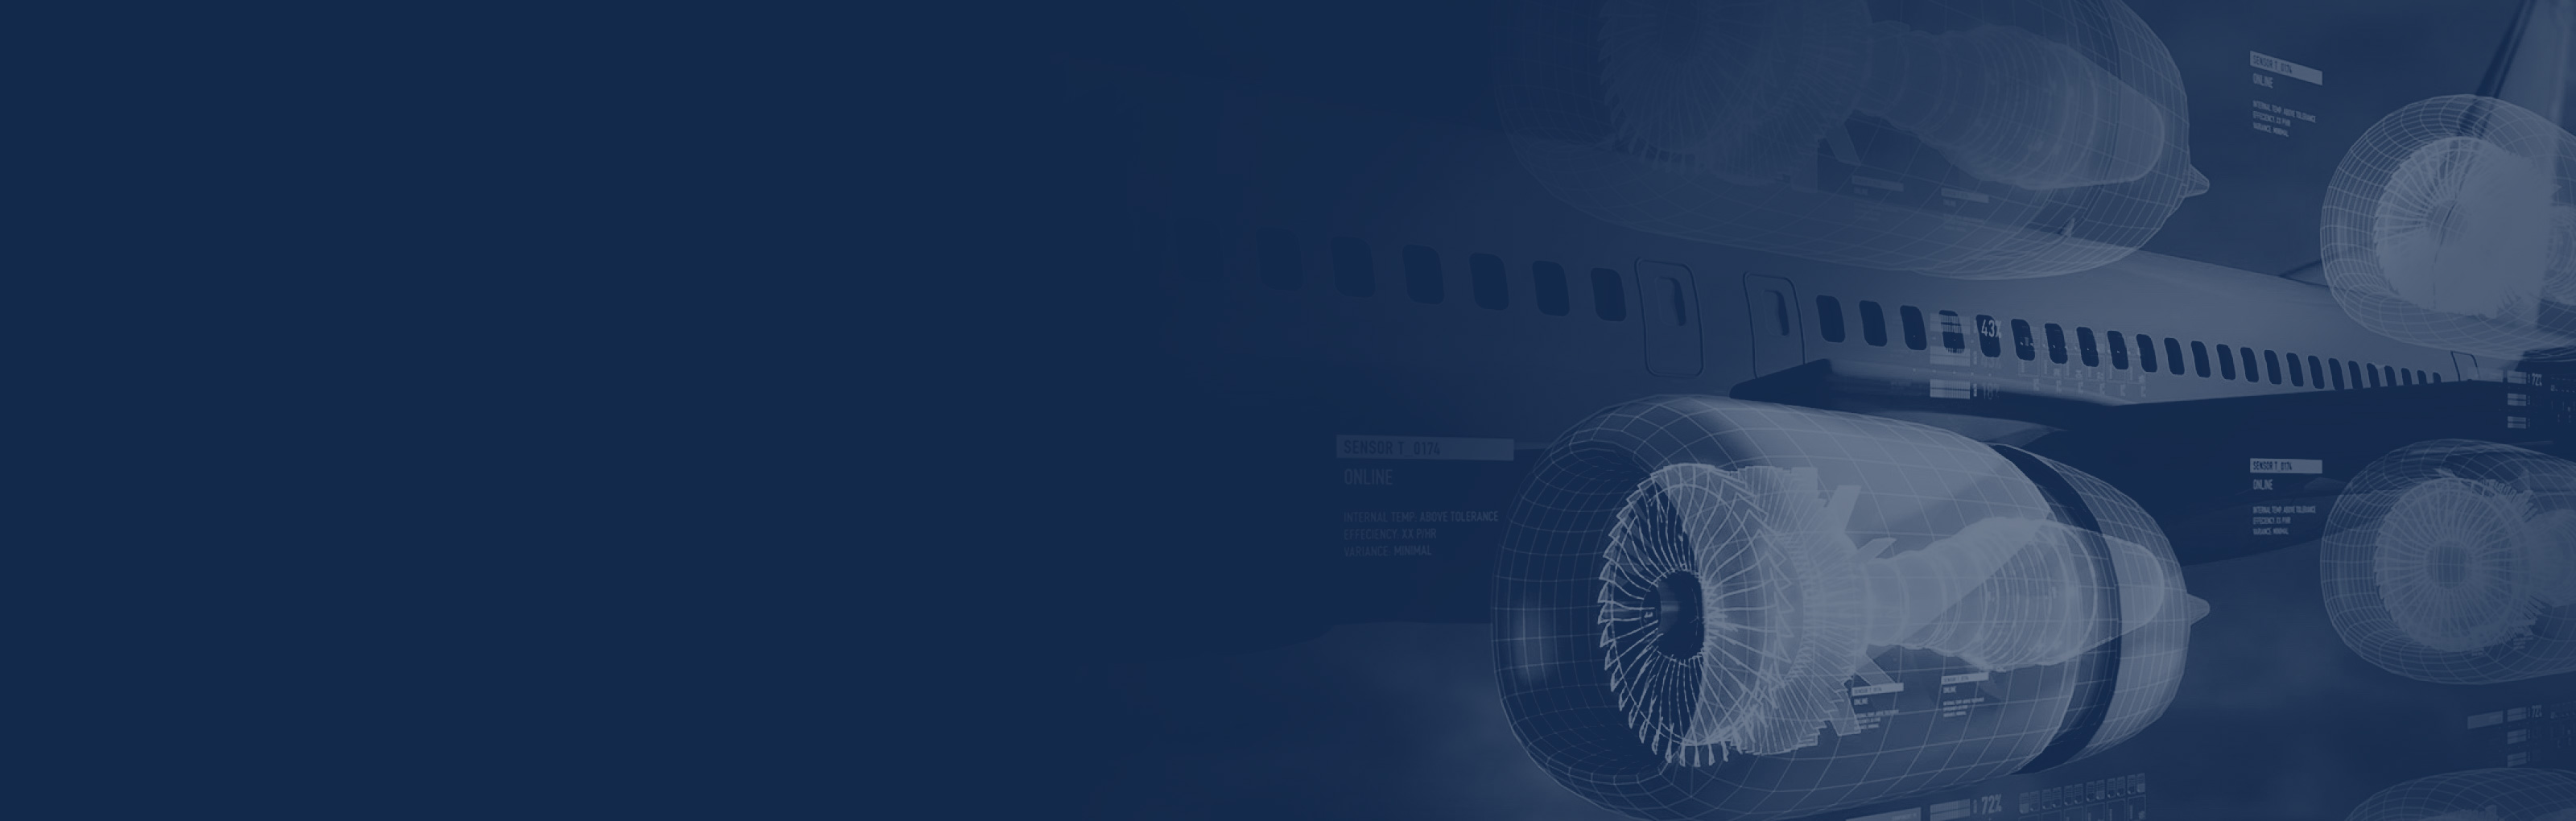 Digital Twin technology from GE Digital, blog header